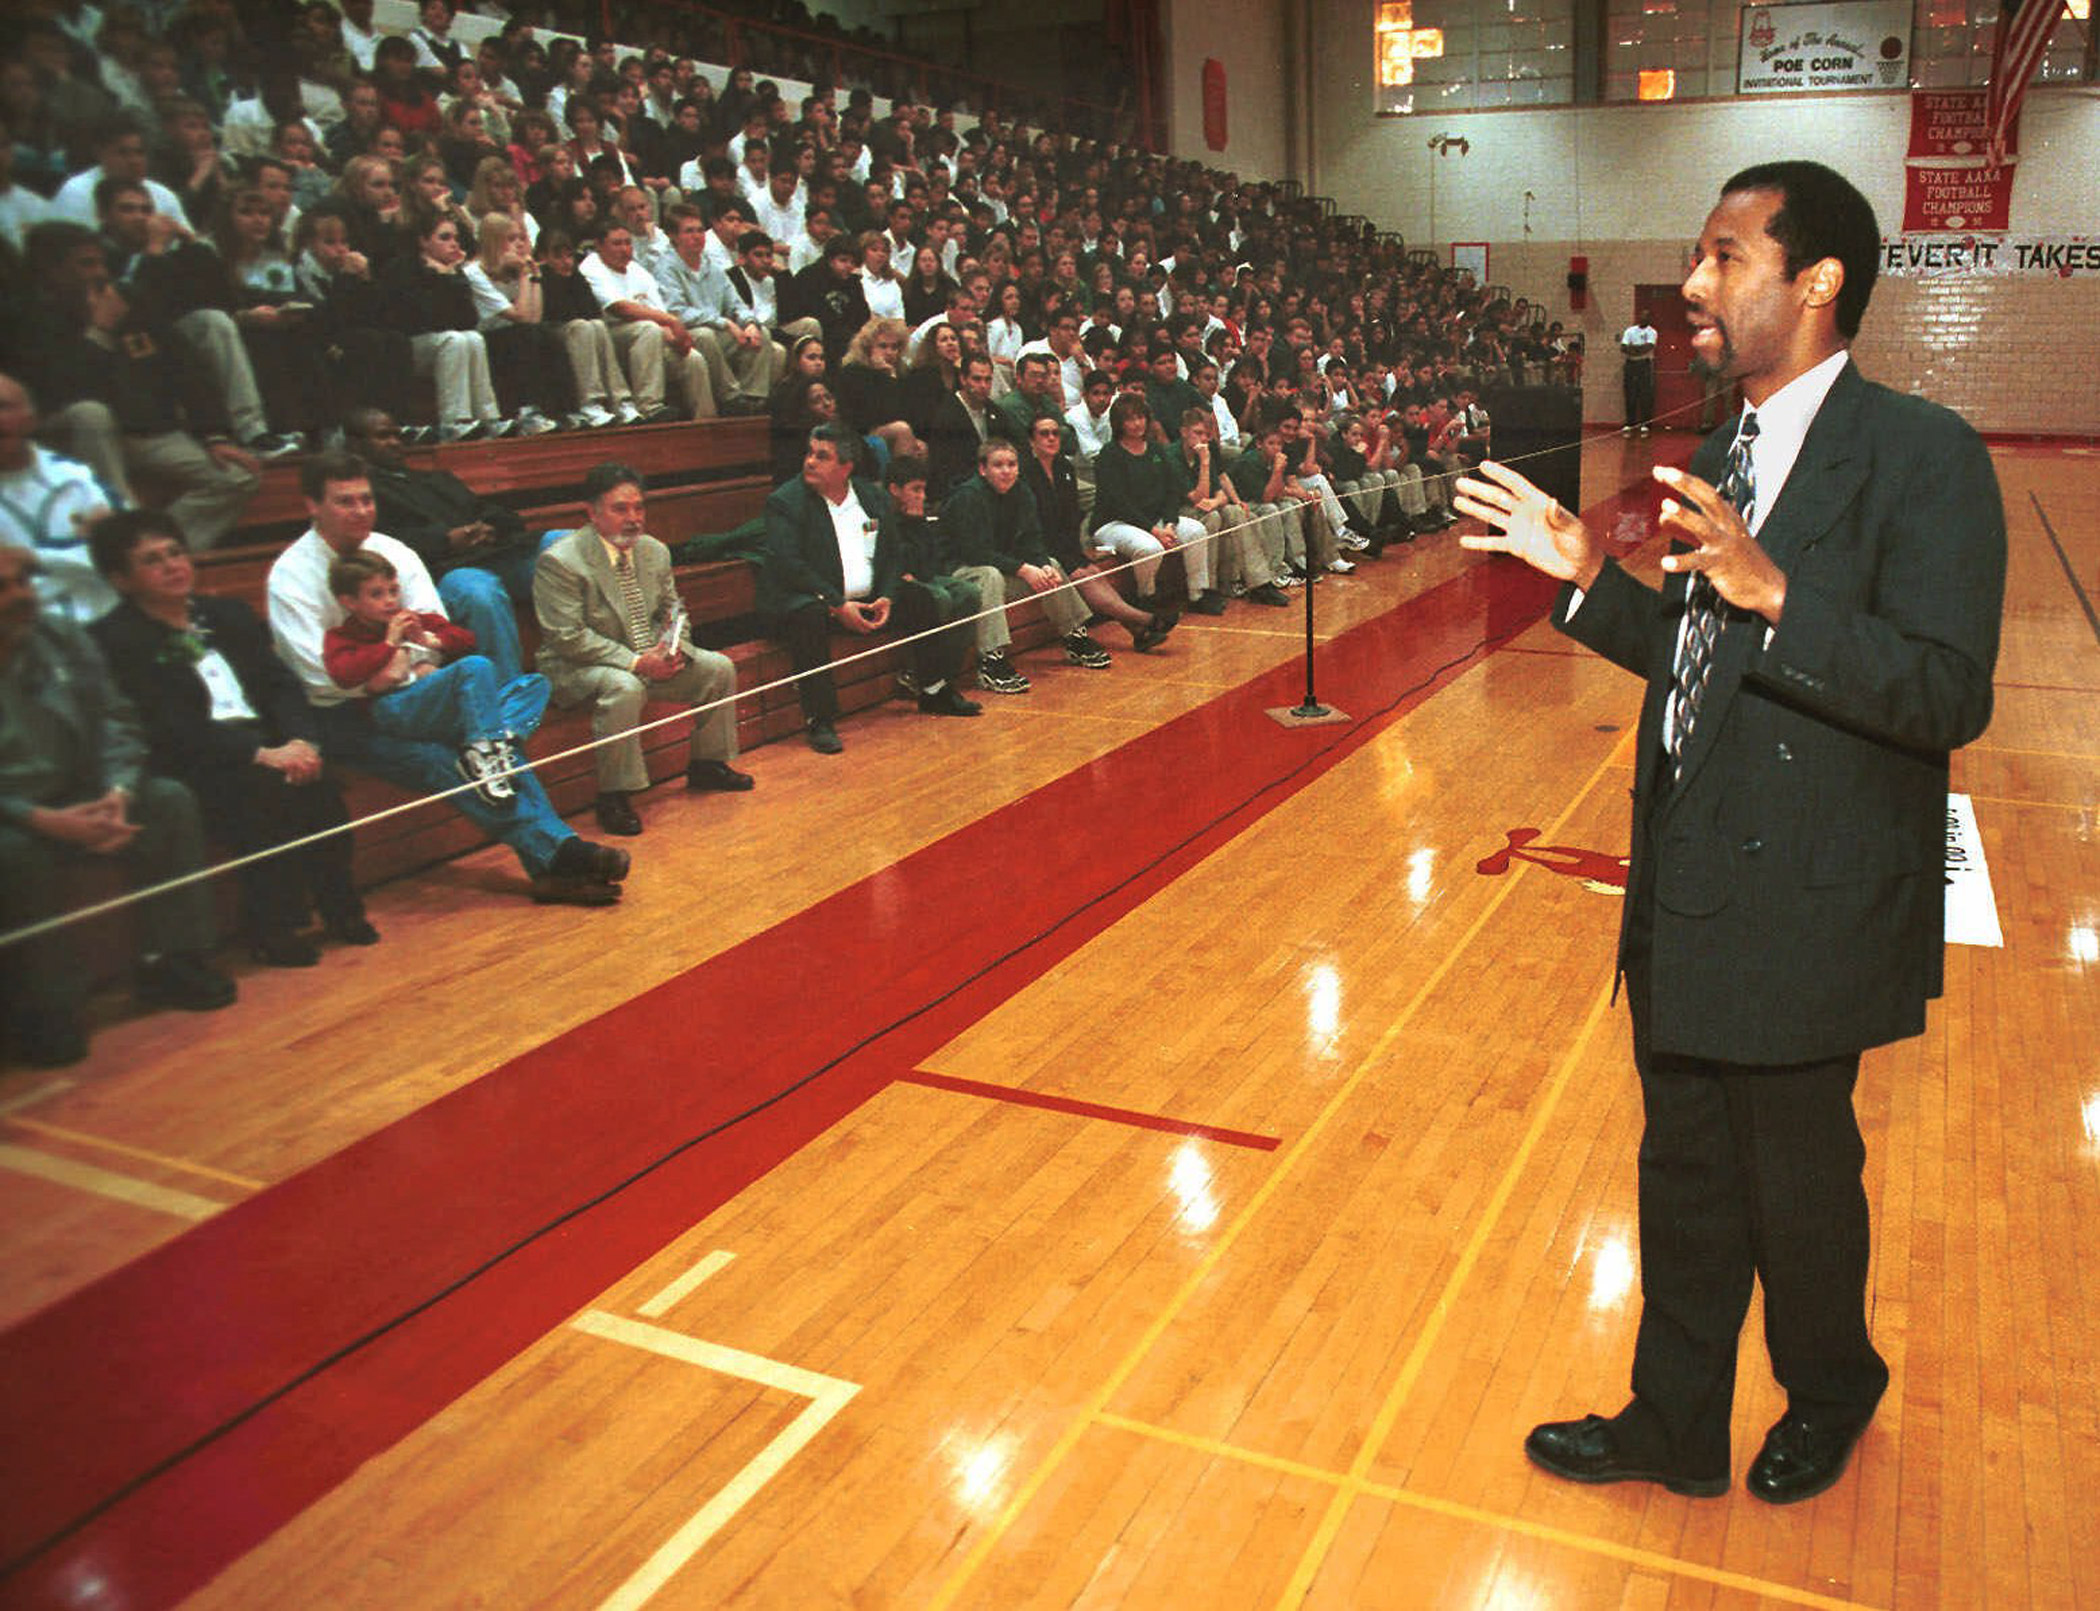 Dr. Ben Carson shares his personal story with middle school students on March 17, 2000 in Roswell, N.M.